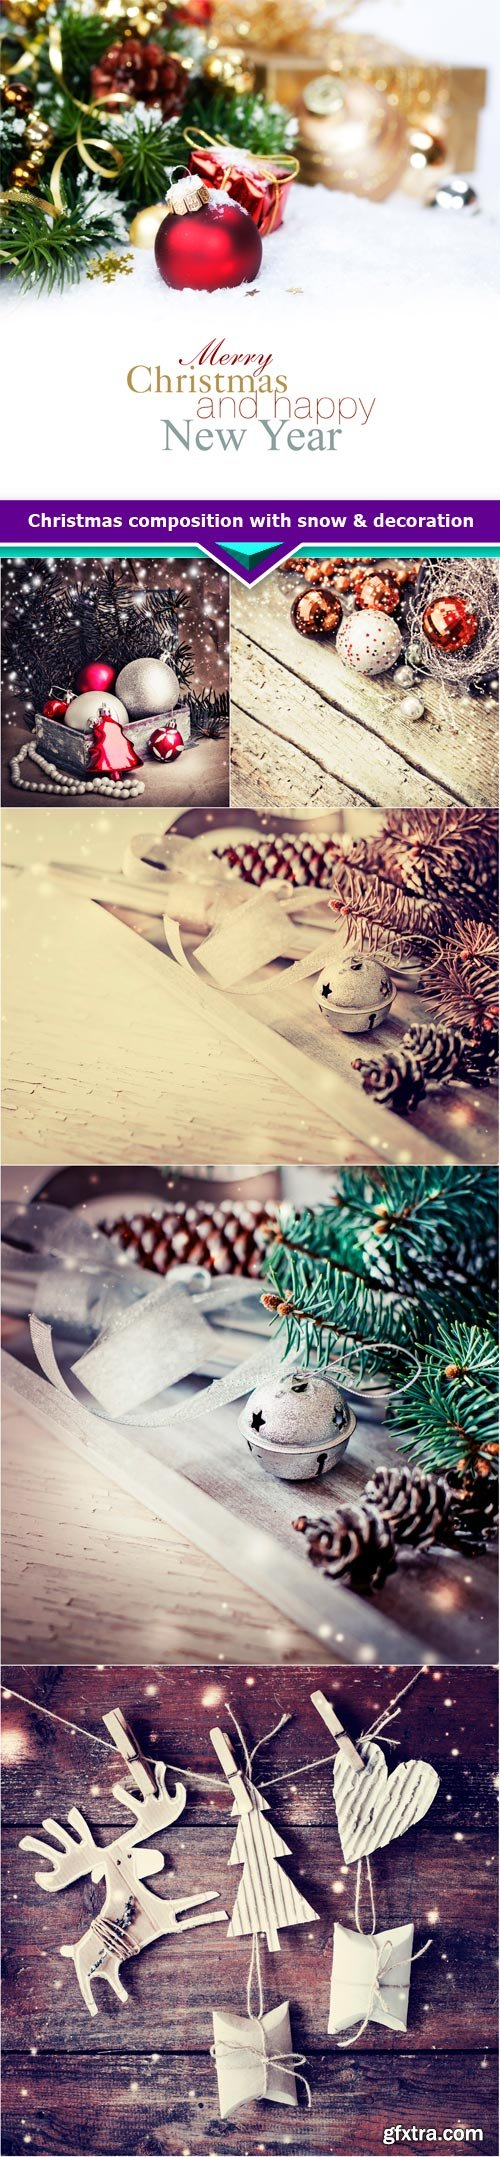 Christmas composition with snow & decoration 6x JPEG